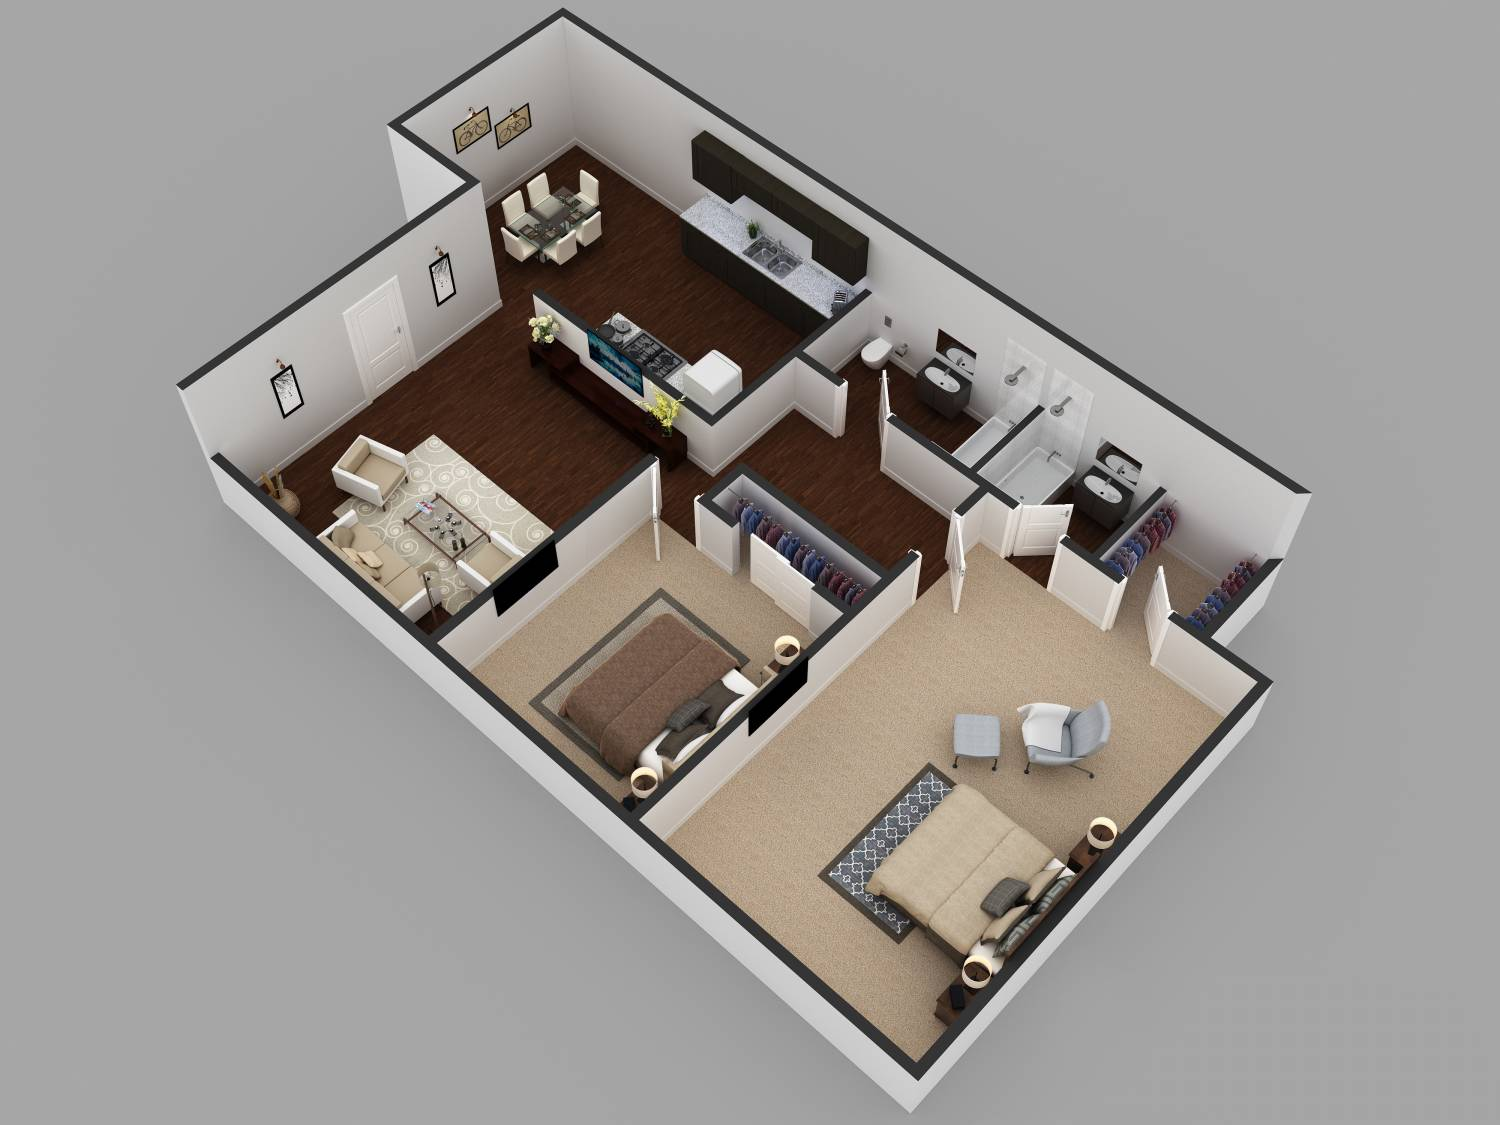 2Bhk Residential Modern House Floor Plan ARCH studentcom